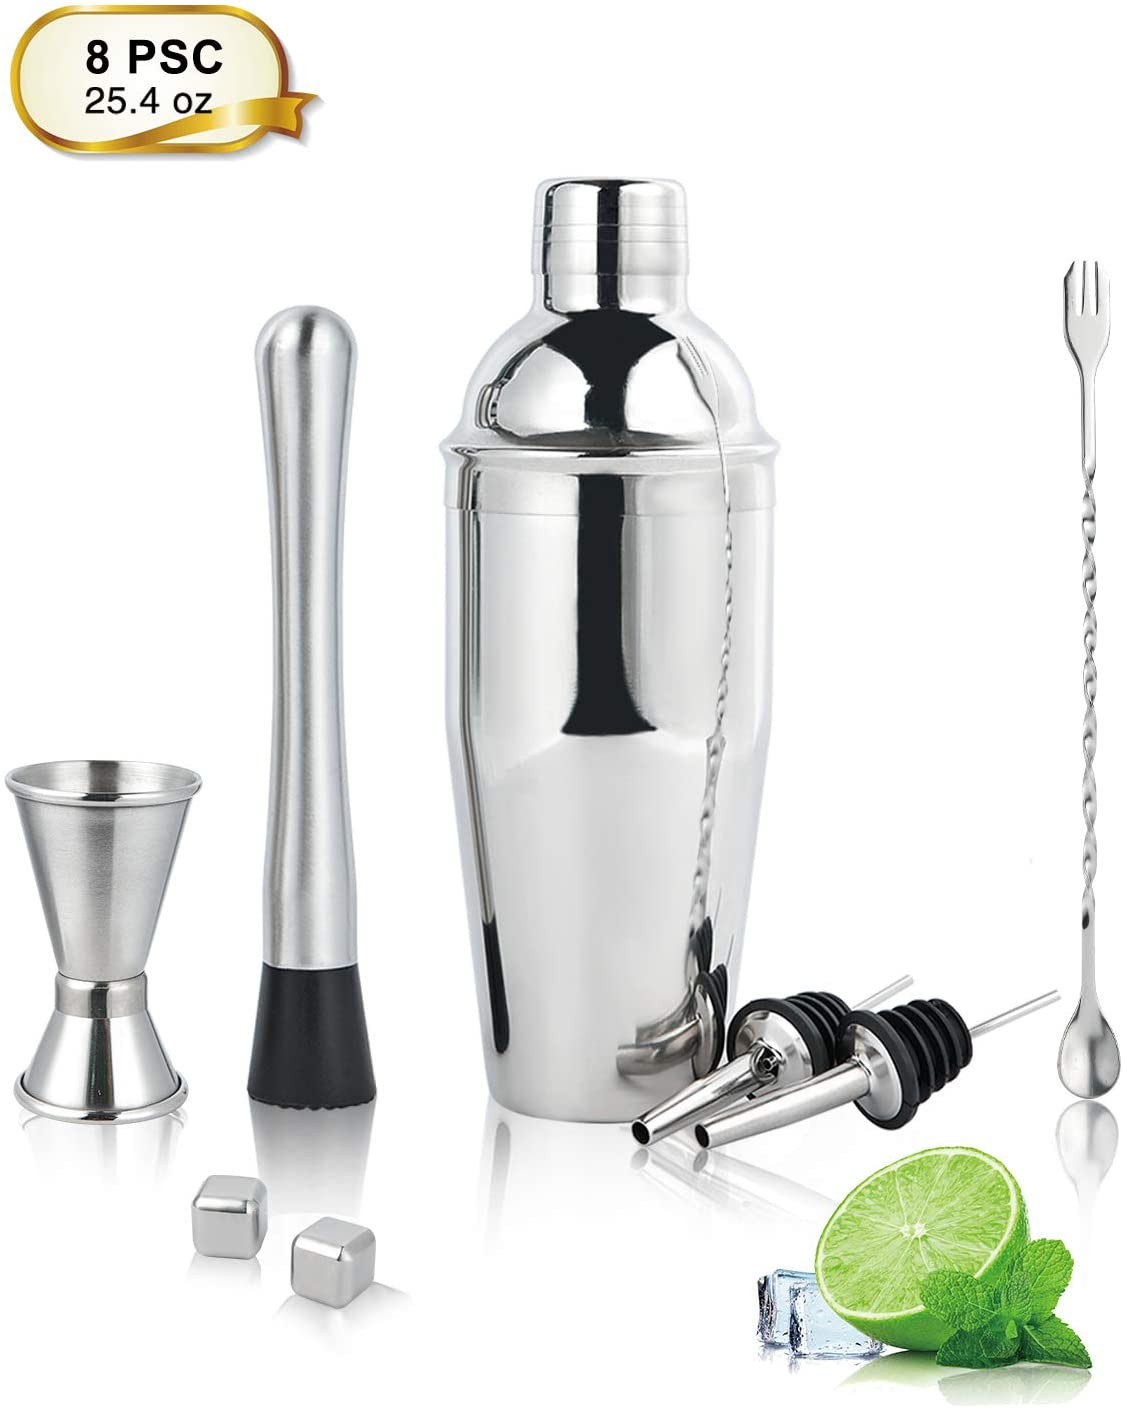 Cocktail shaker, 25.4oz Stainless Steel Martini Shaker Set, 8 Piece Bartender Kit with Measuring Jigger/Mixing Spoon/Cocktail Muddler / 2 Liquor Pourers/Cocktail Recipe/2 Metal Ice Cubes